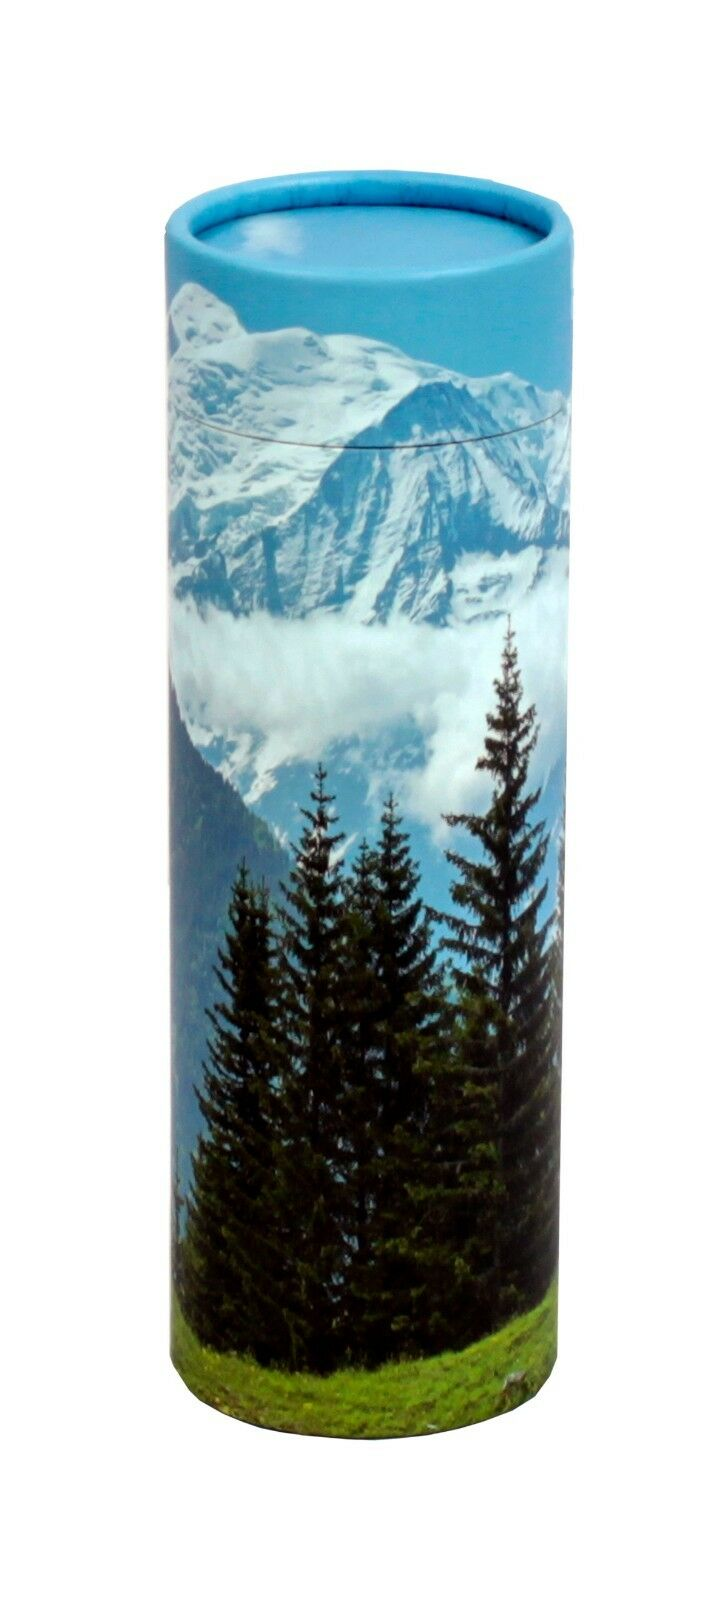 Biodegradable Ash Scattering Tube Funeral Cremation Urn - 40 cubic inches